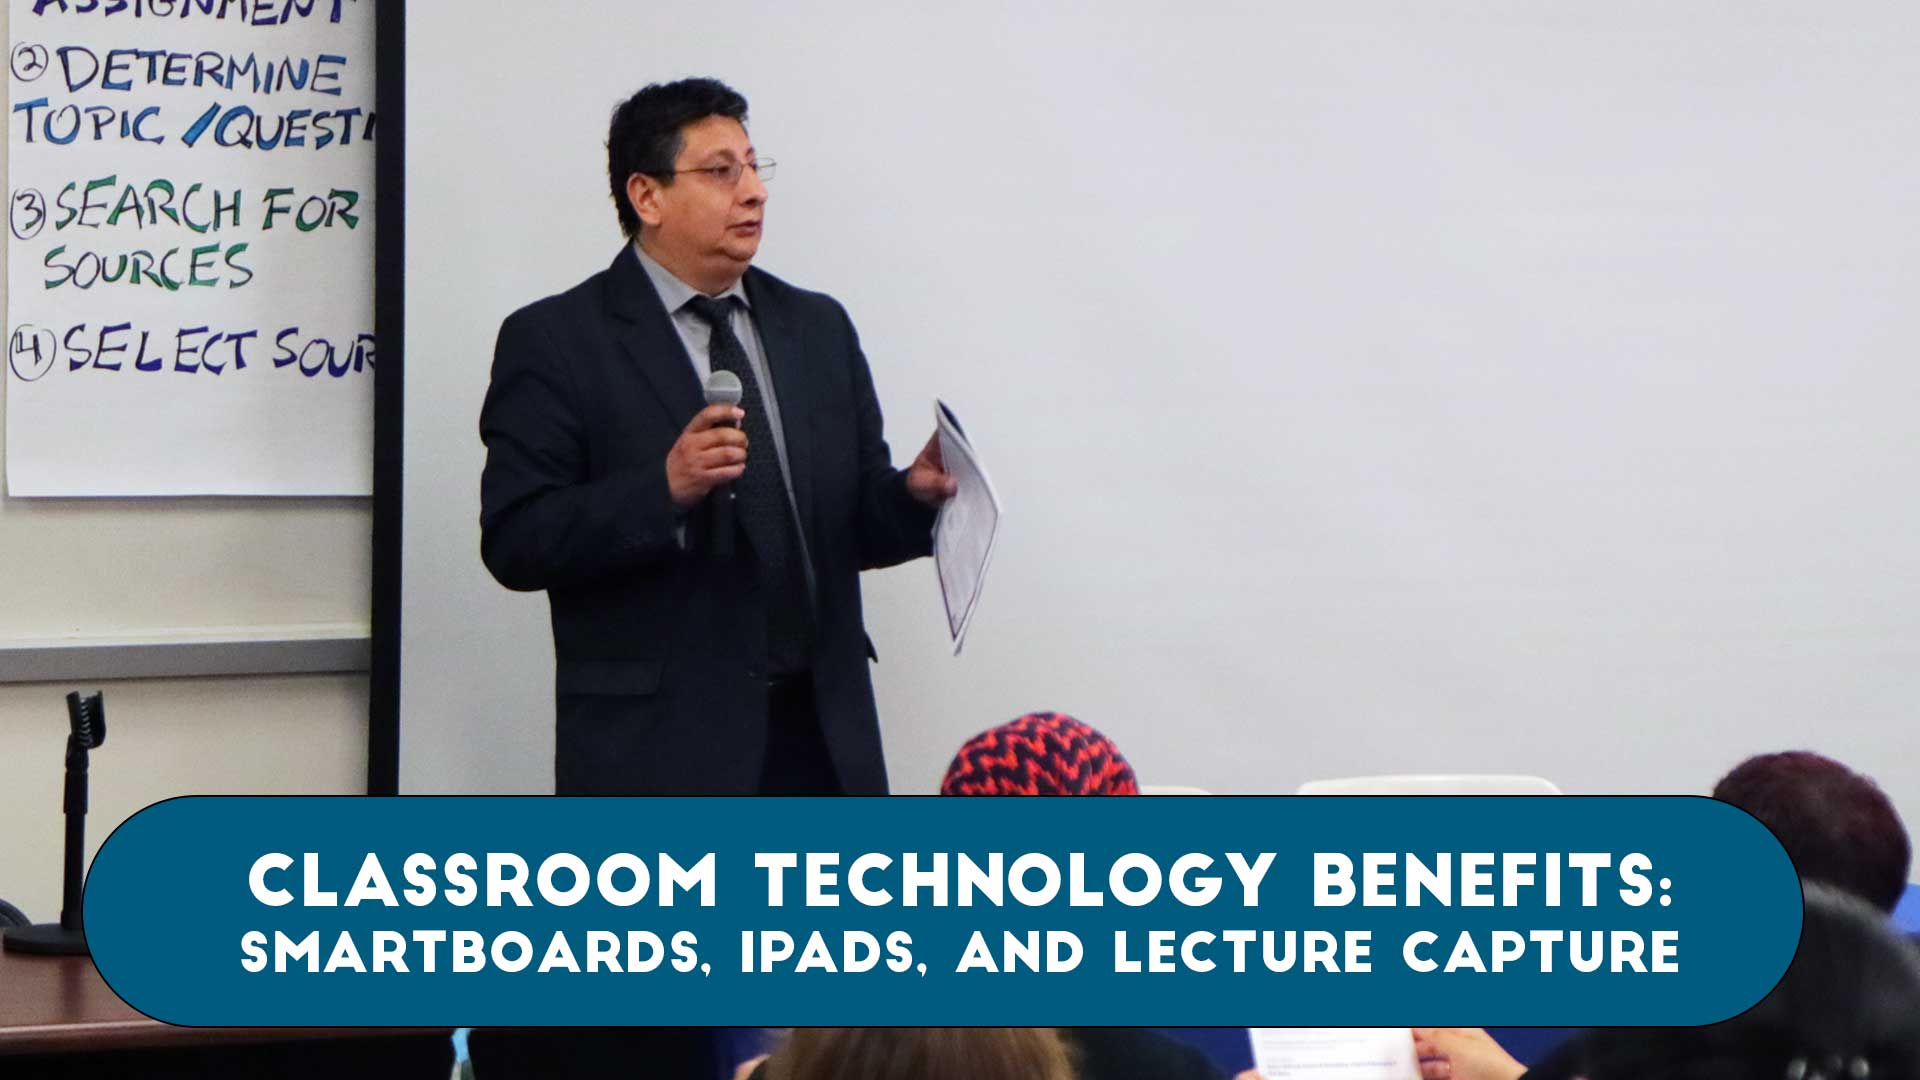 Classroom Technology Benefits: Smartboards, Ipads, and lecture capture